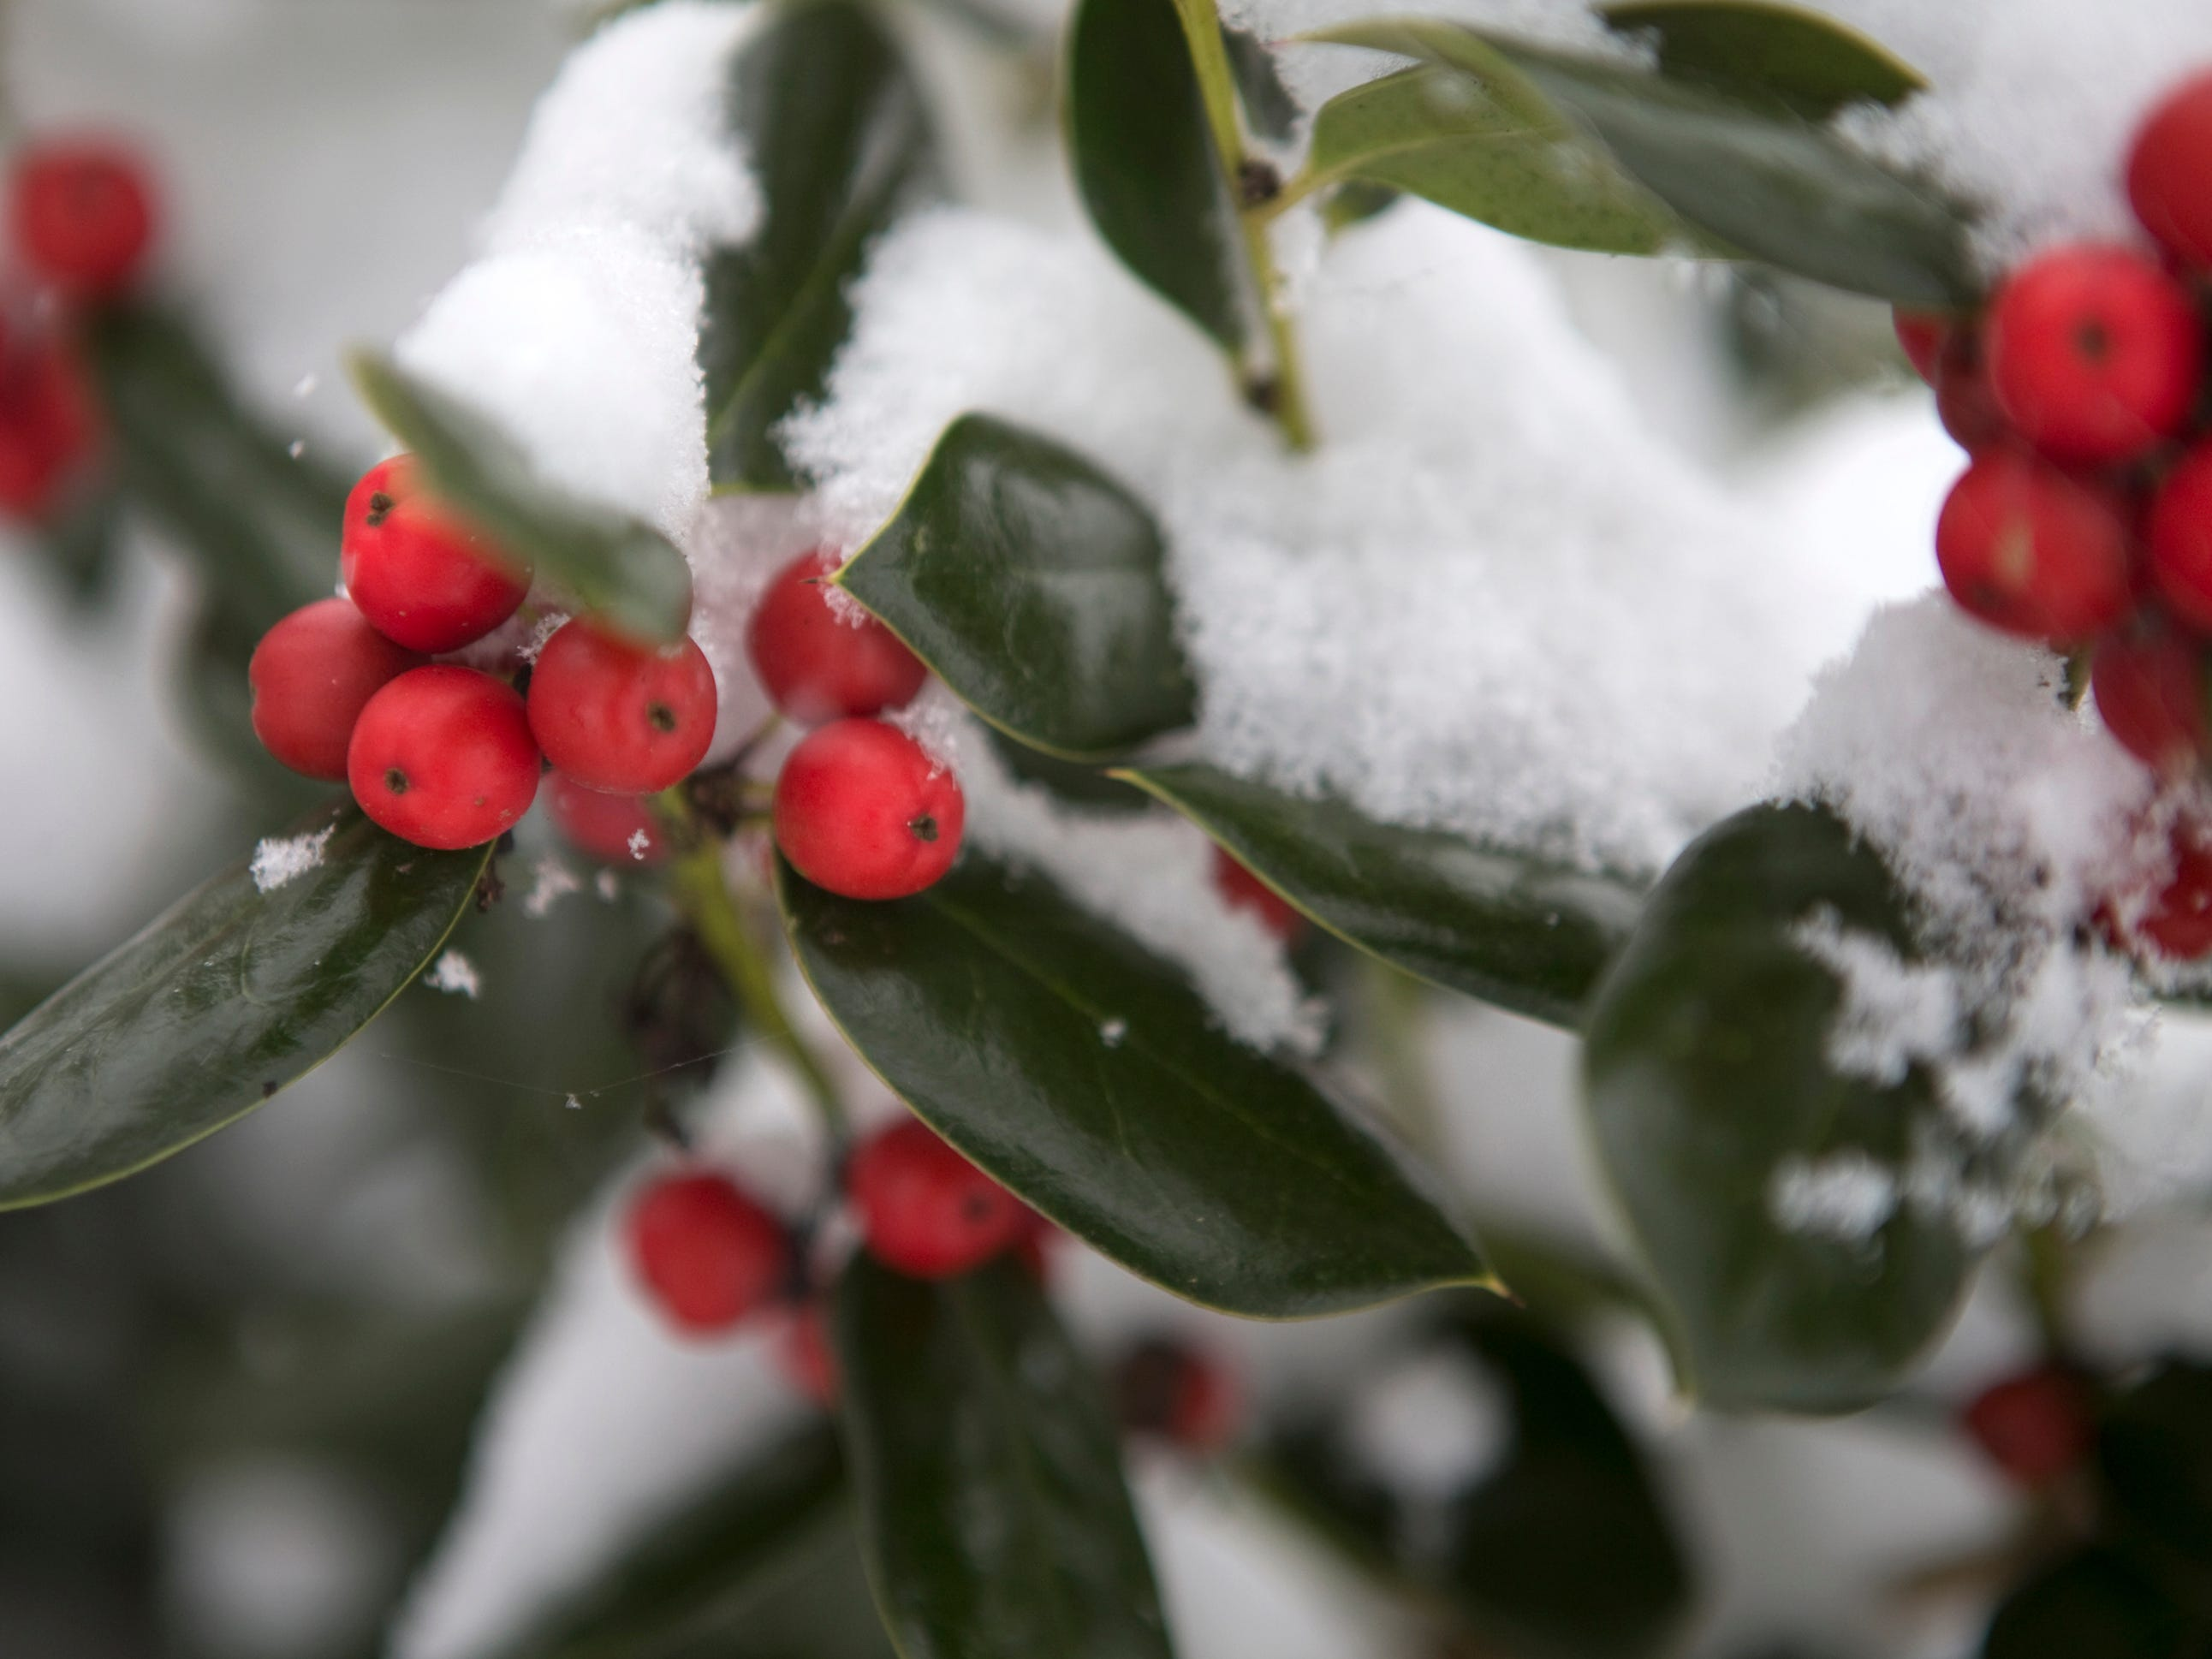 Snow covered berries are seen in Roanoke, Va., on Dec. 9.